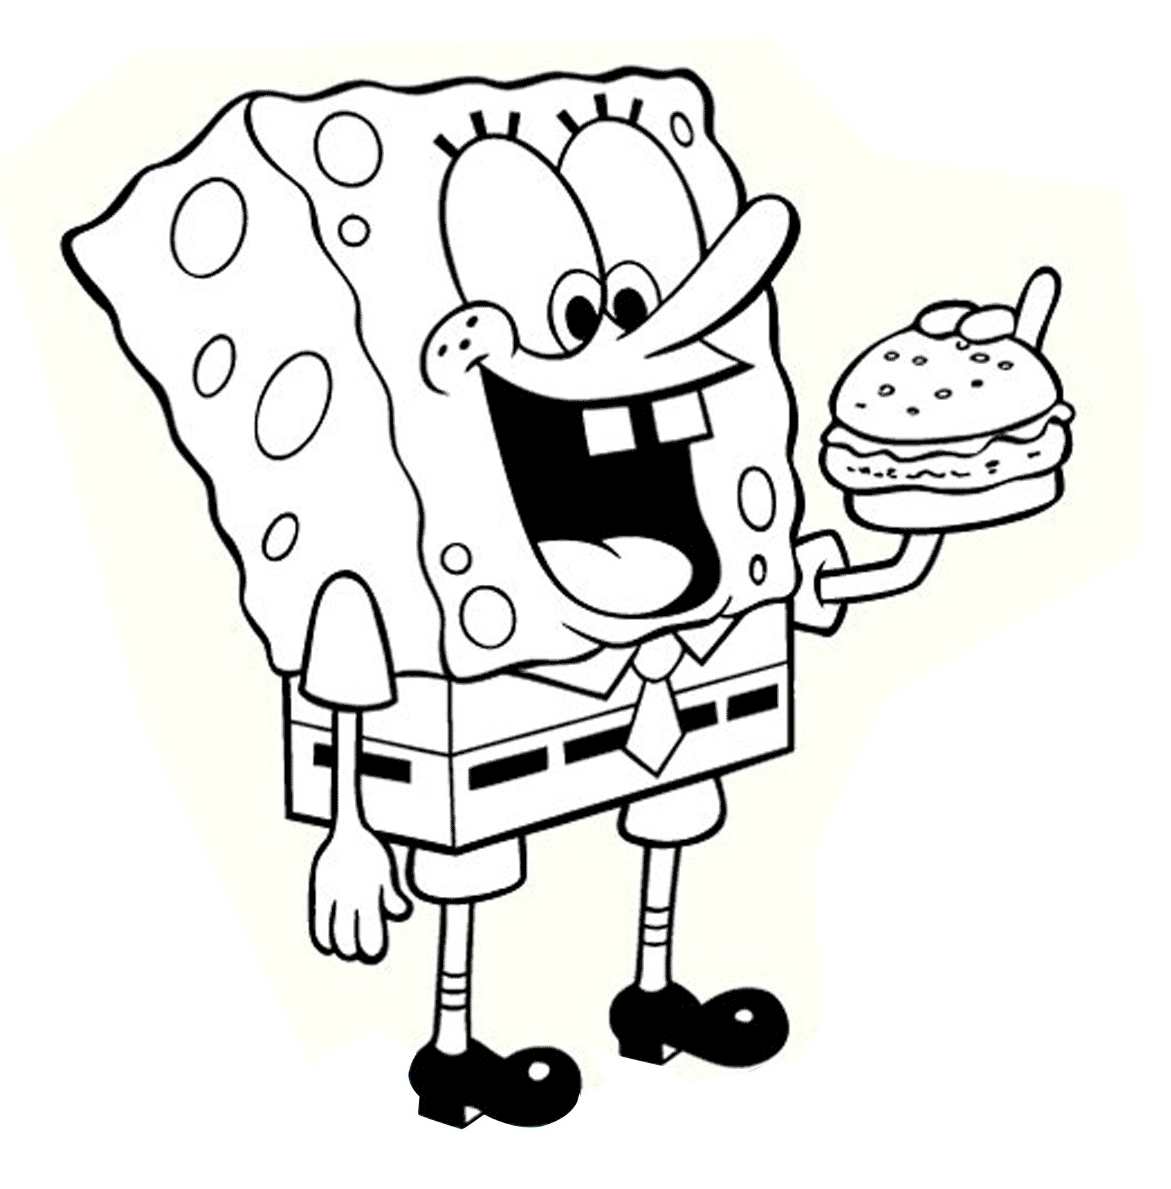 spongebob free coloring pages - photo#3